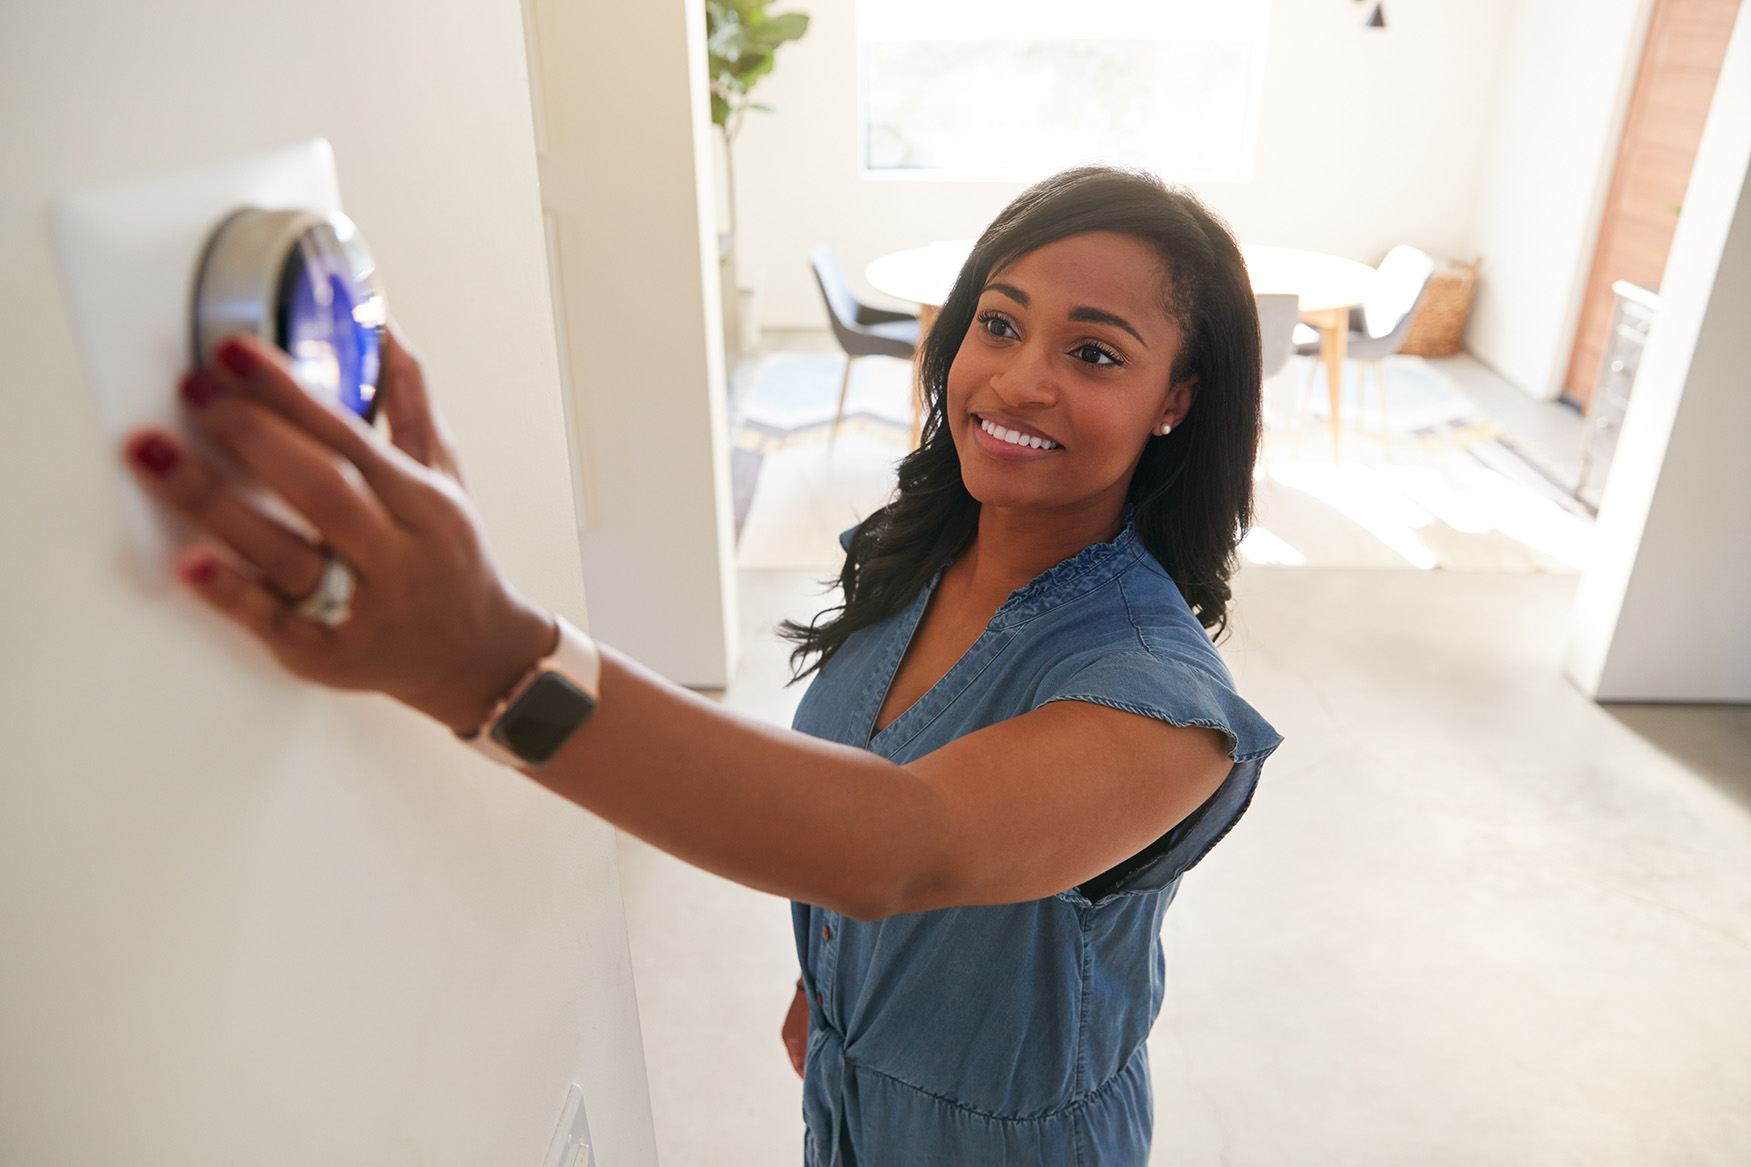 Photo of a young woman adjusting a digital thermostat